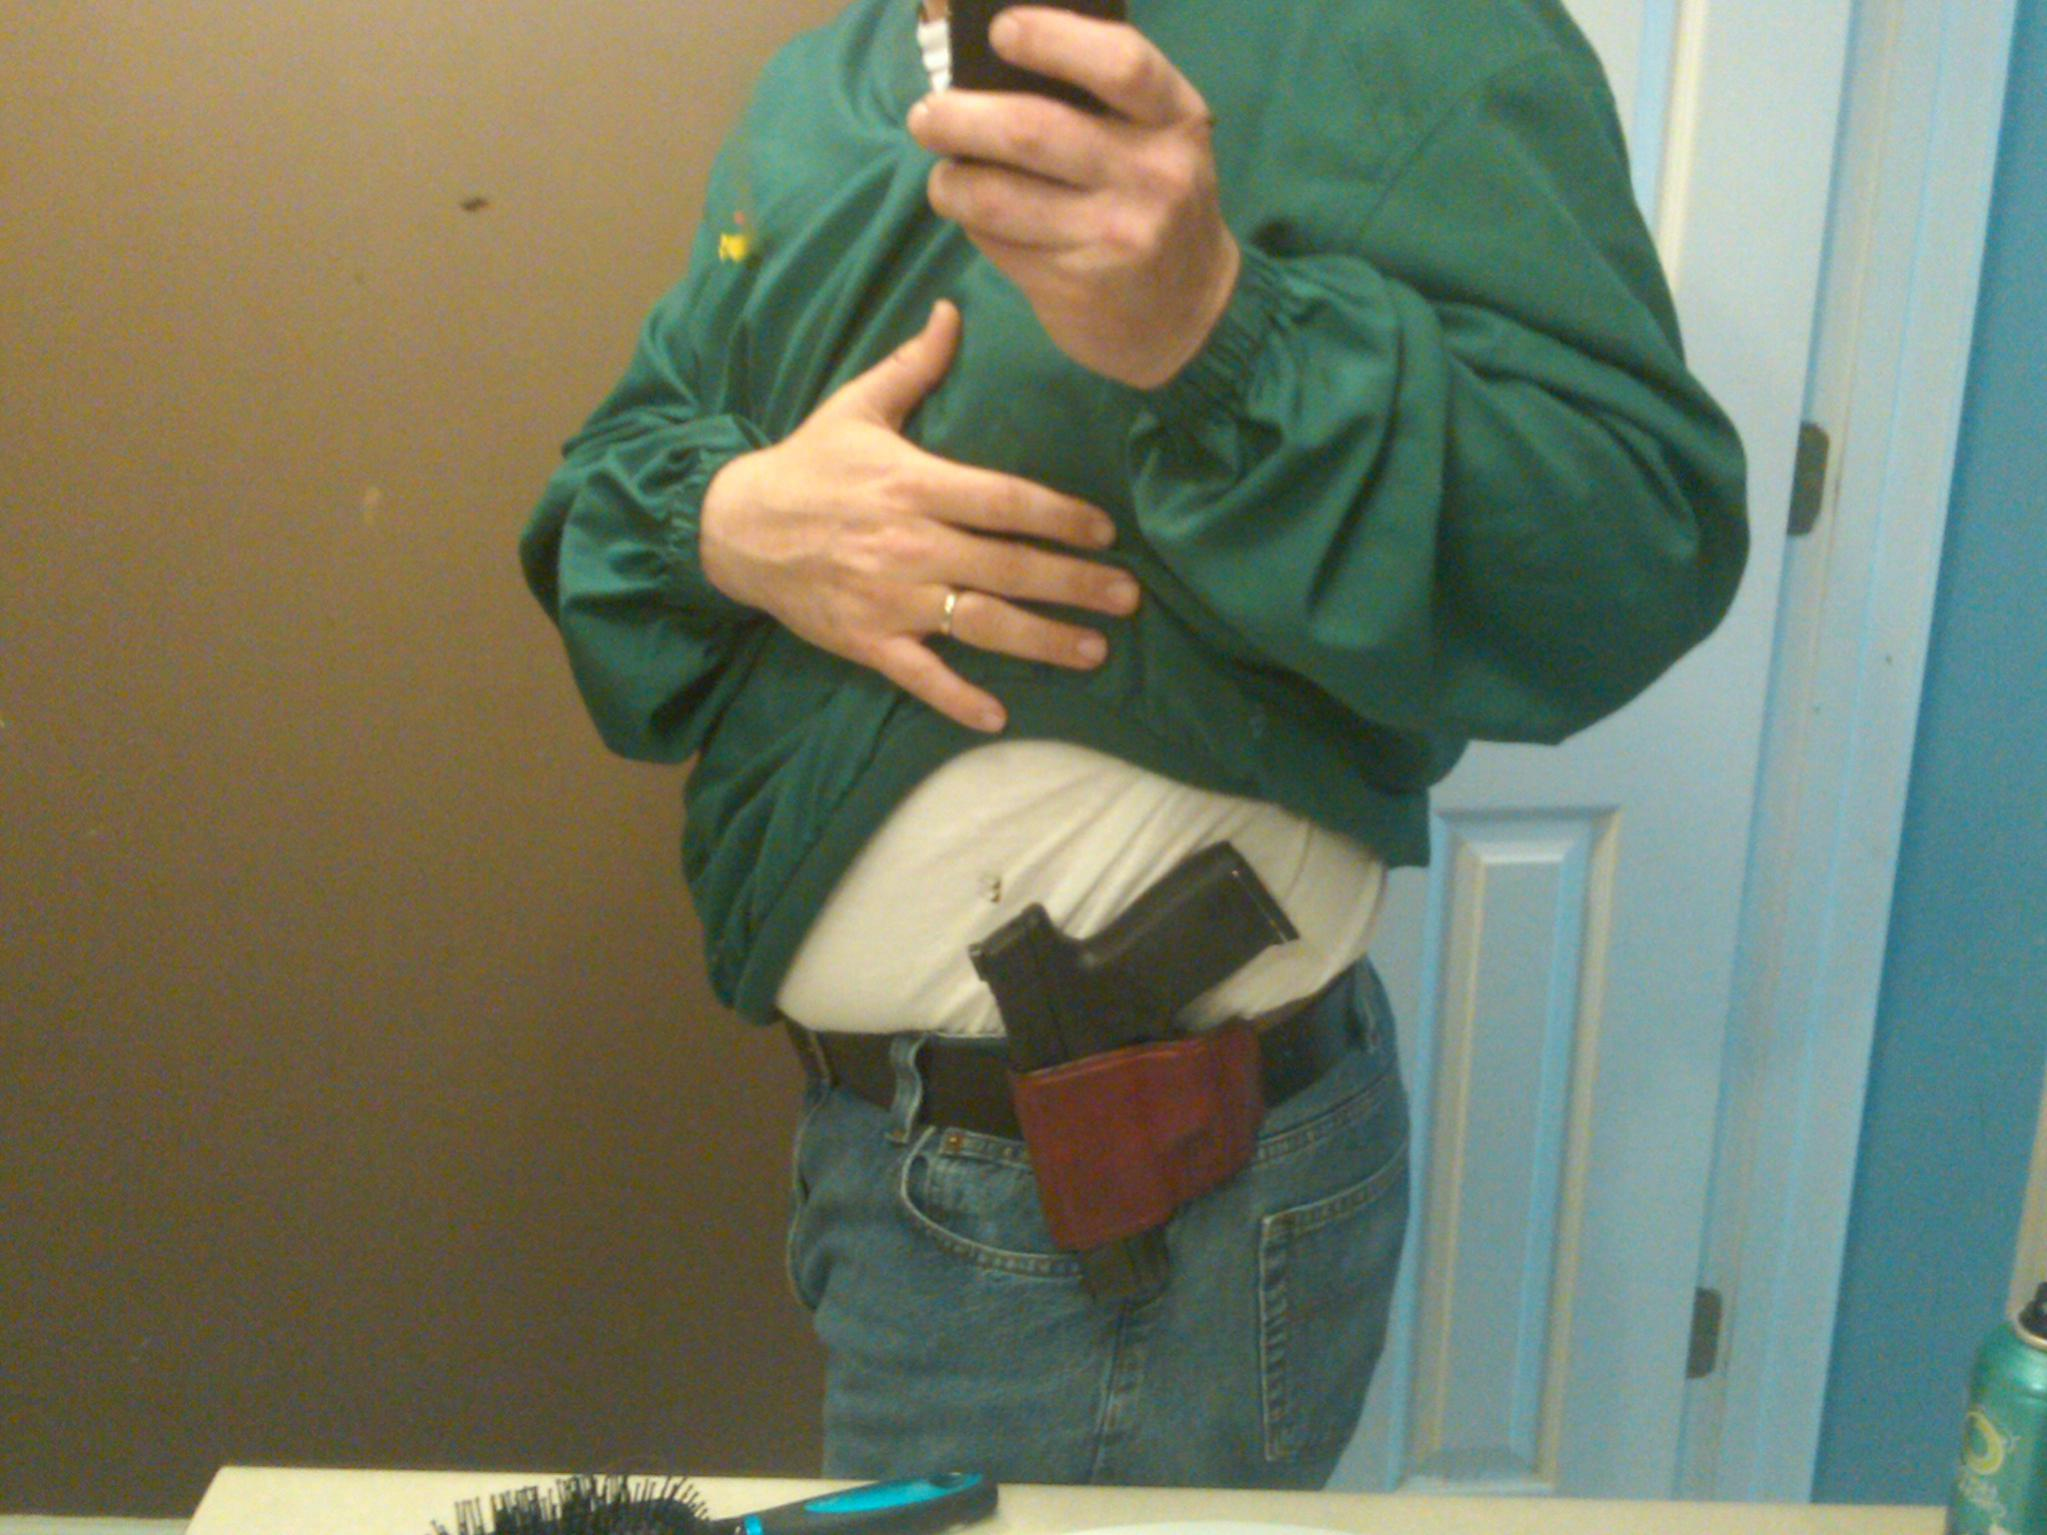 Don Hume JIT slide holster for a Glock?-jit-slide-holster.jpg